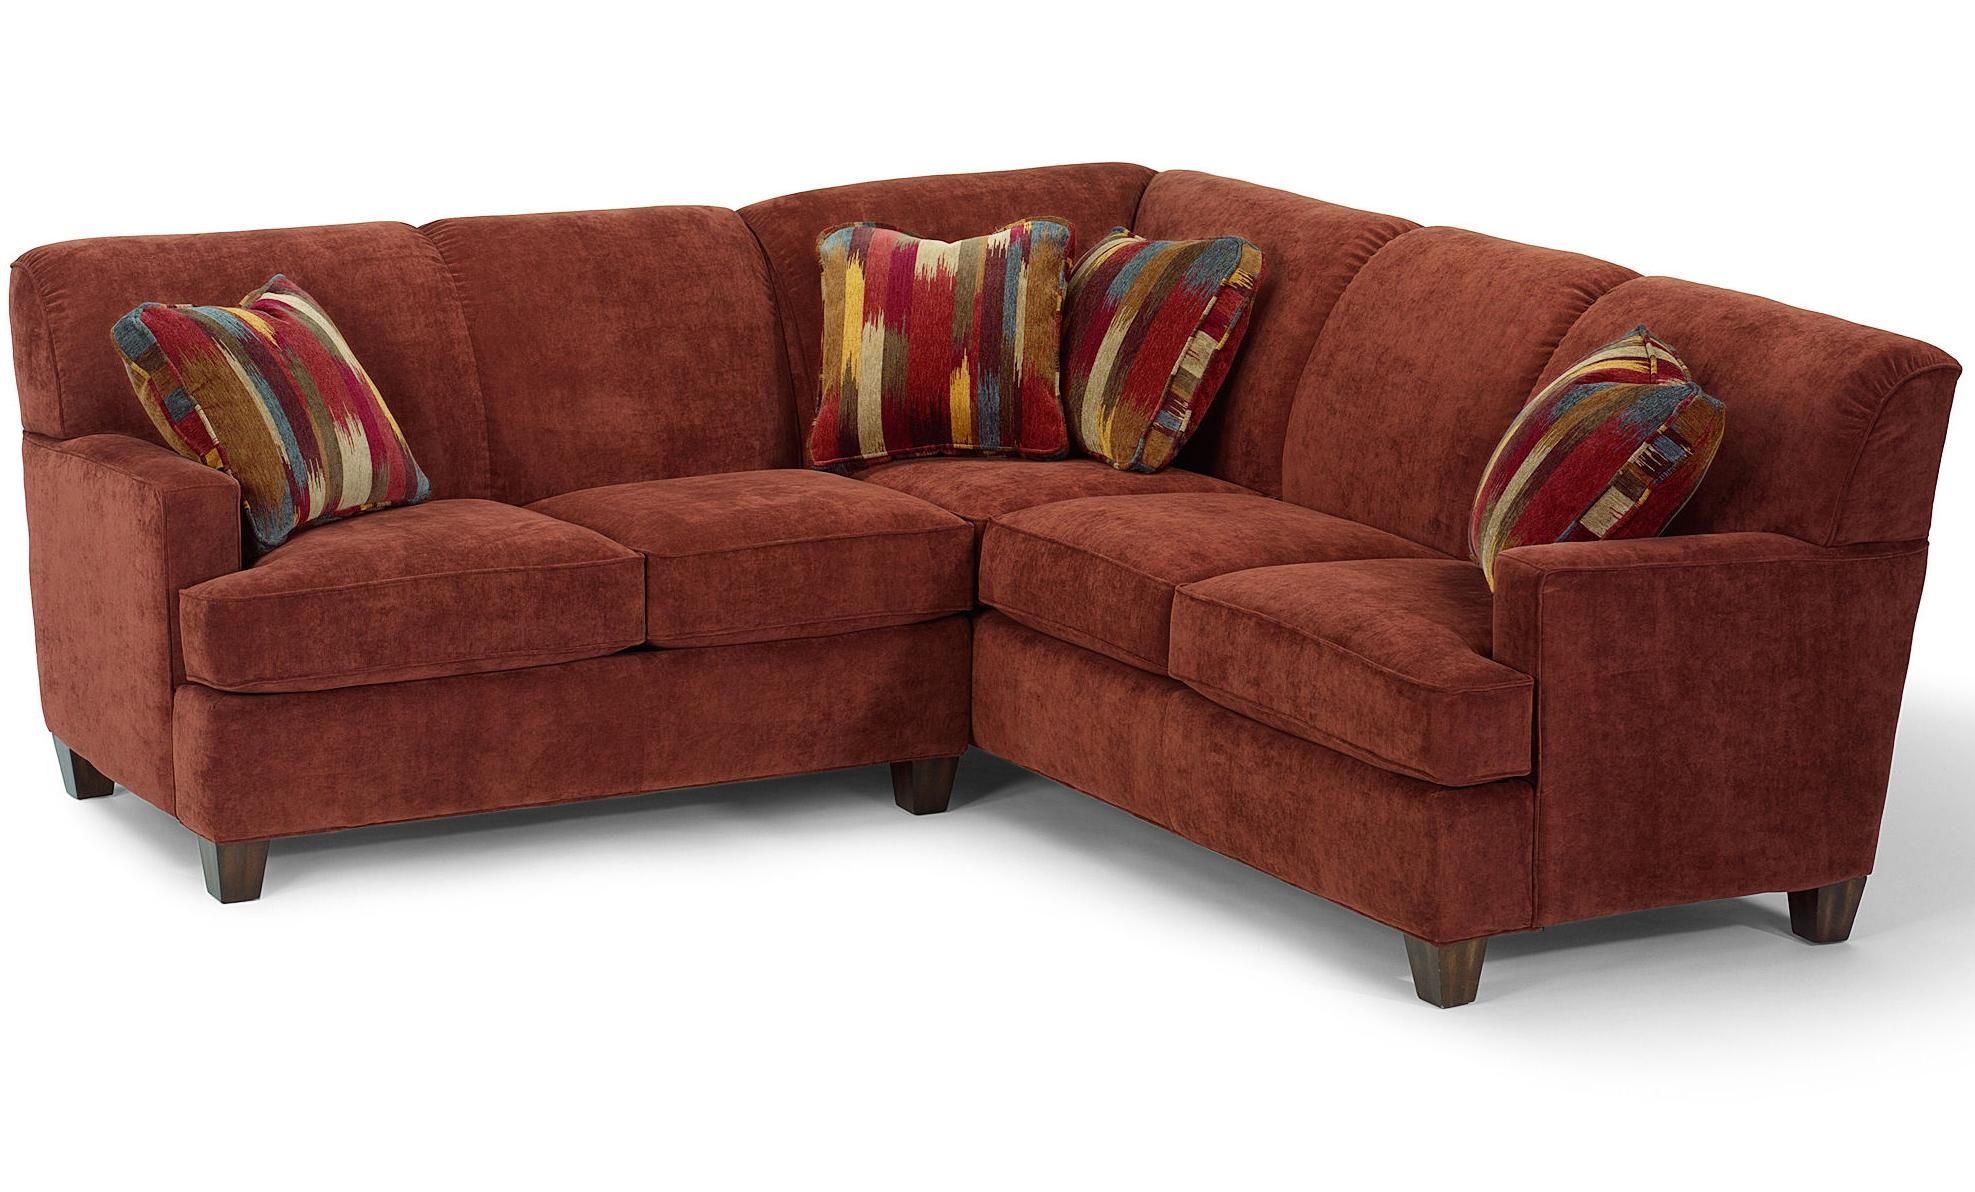 Flexsteel Dempsey Contemporary 2 Piece Sectional Sofa with LAF